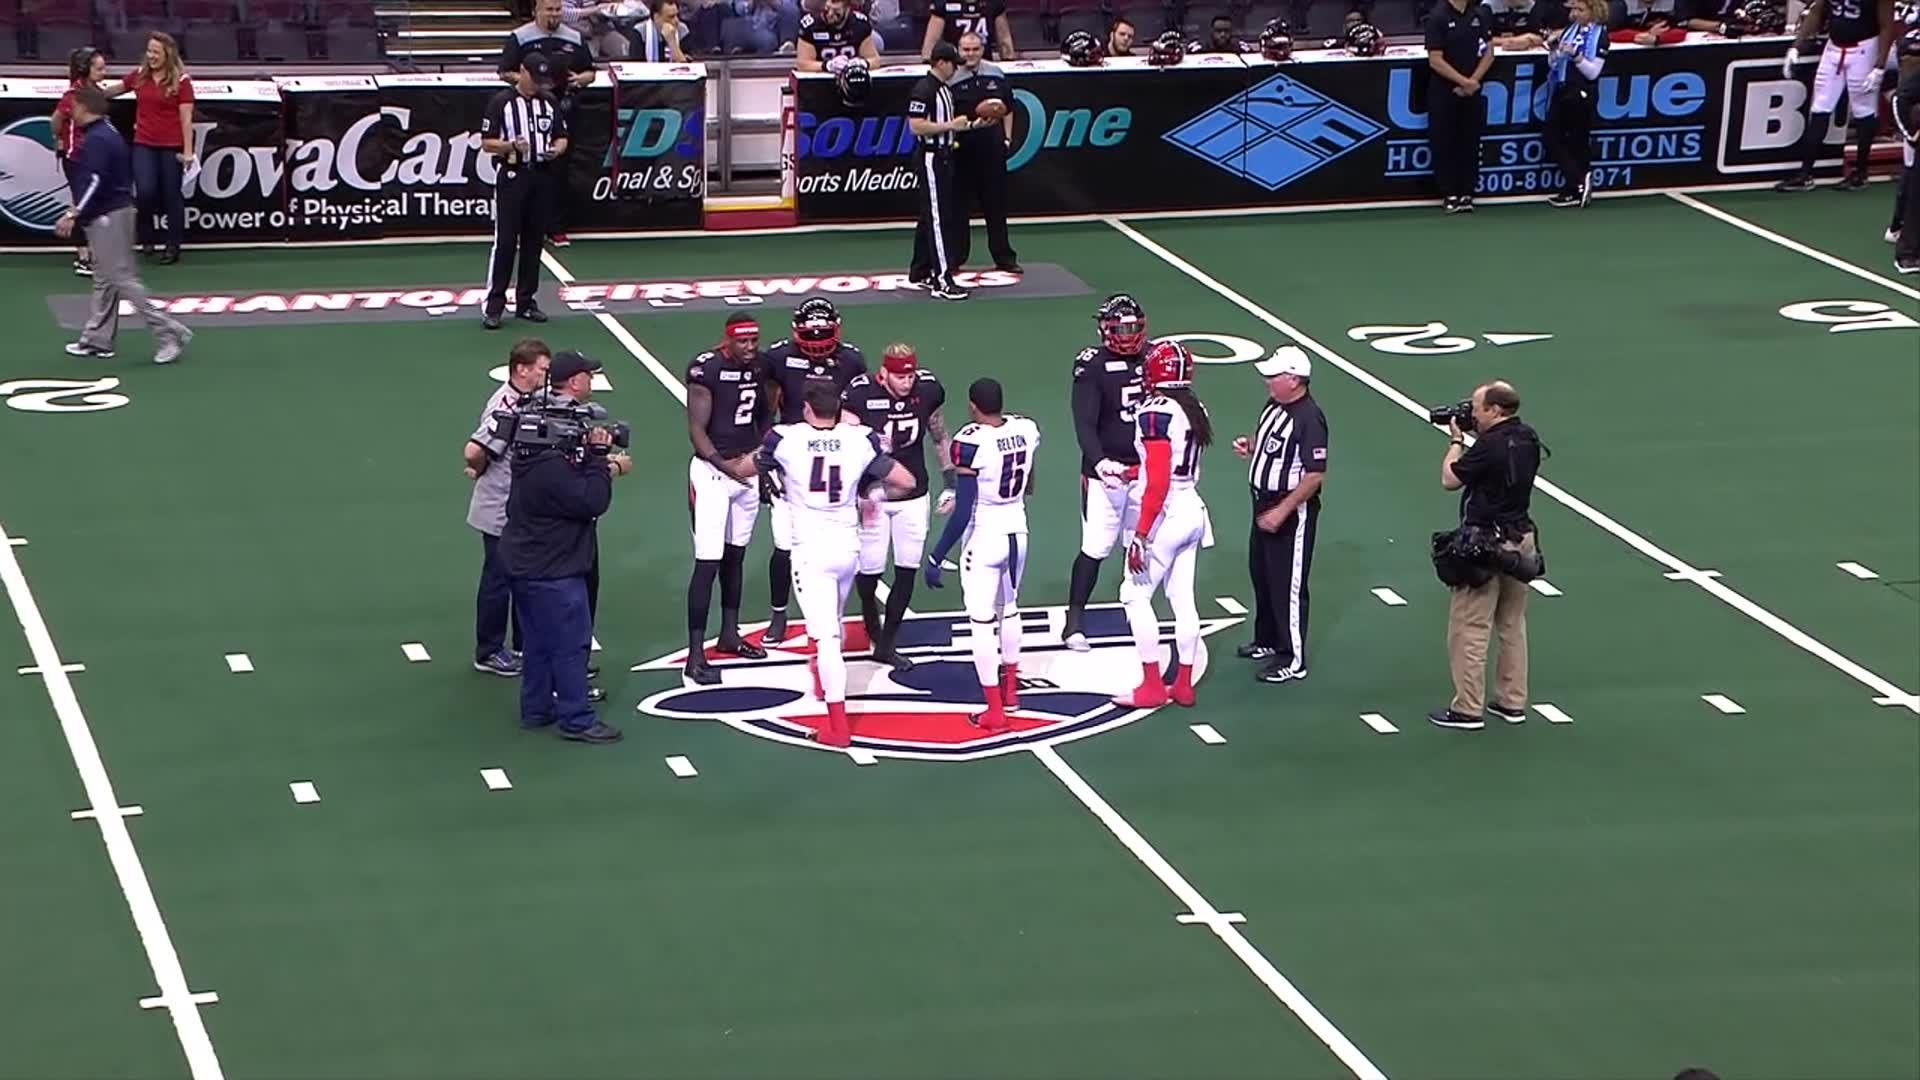 AFL Week 4 Full Game: Valor @ Gladiators